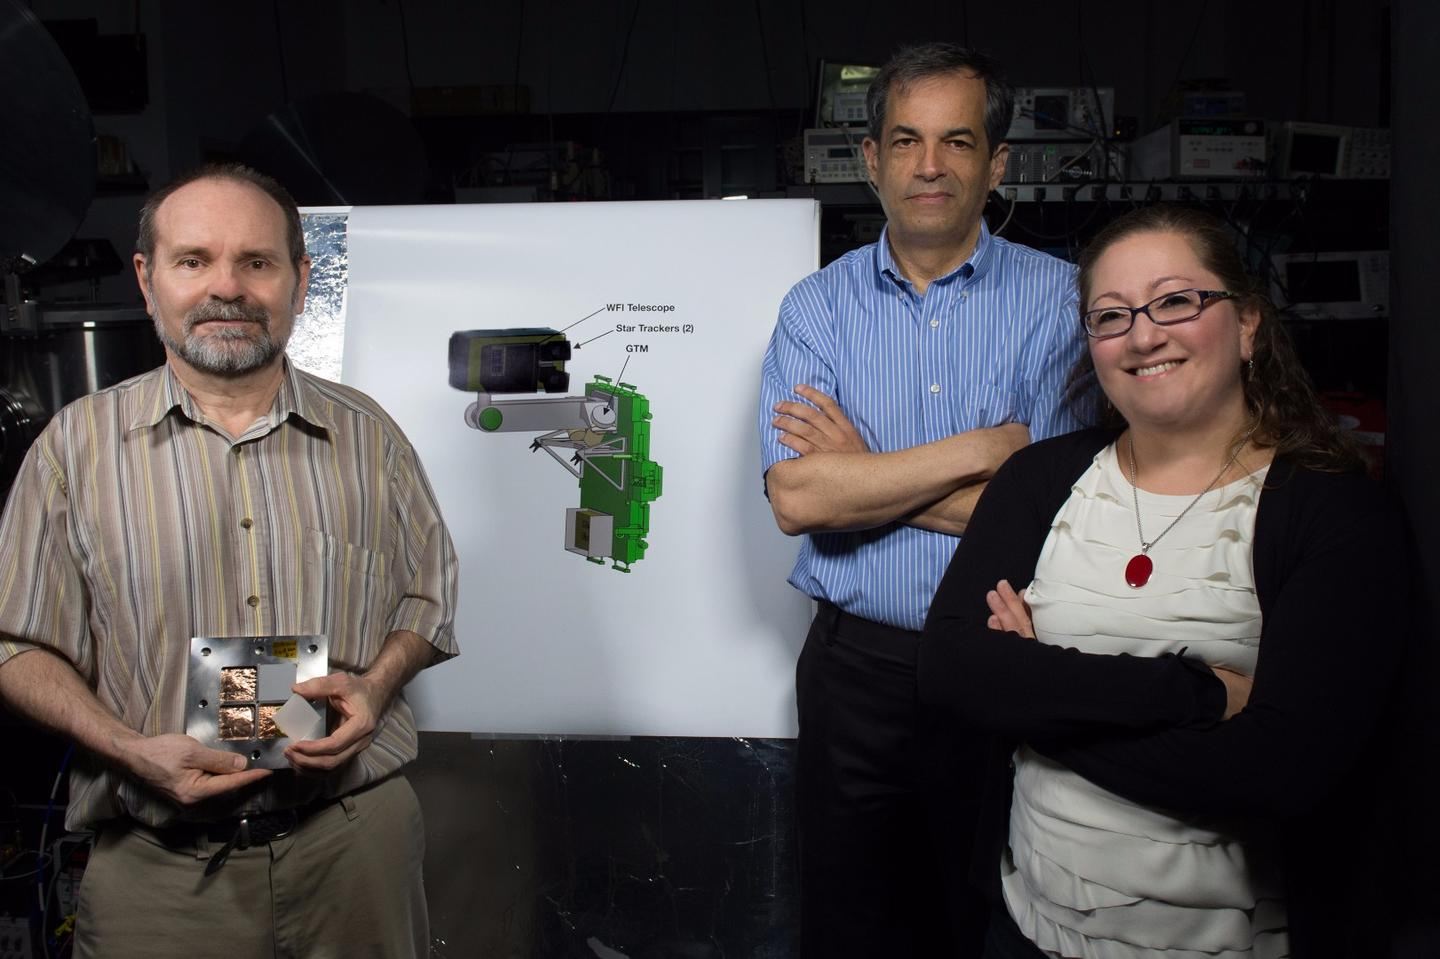 Goddard Principal Investigator Jordan Camp (center) and Co-Investigator Judy Racusin with Deputy Principal Investigator Scott Barthelmy (left) holding the micro-channel optic